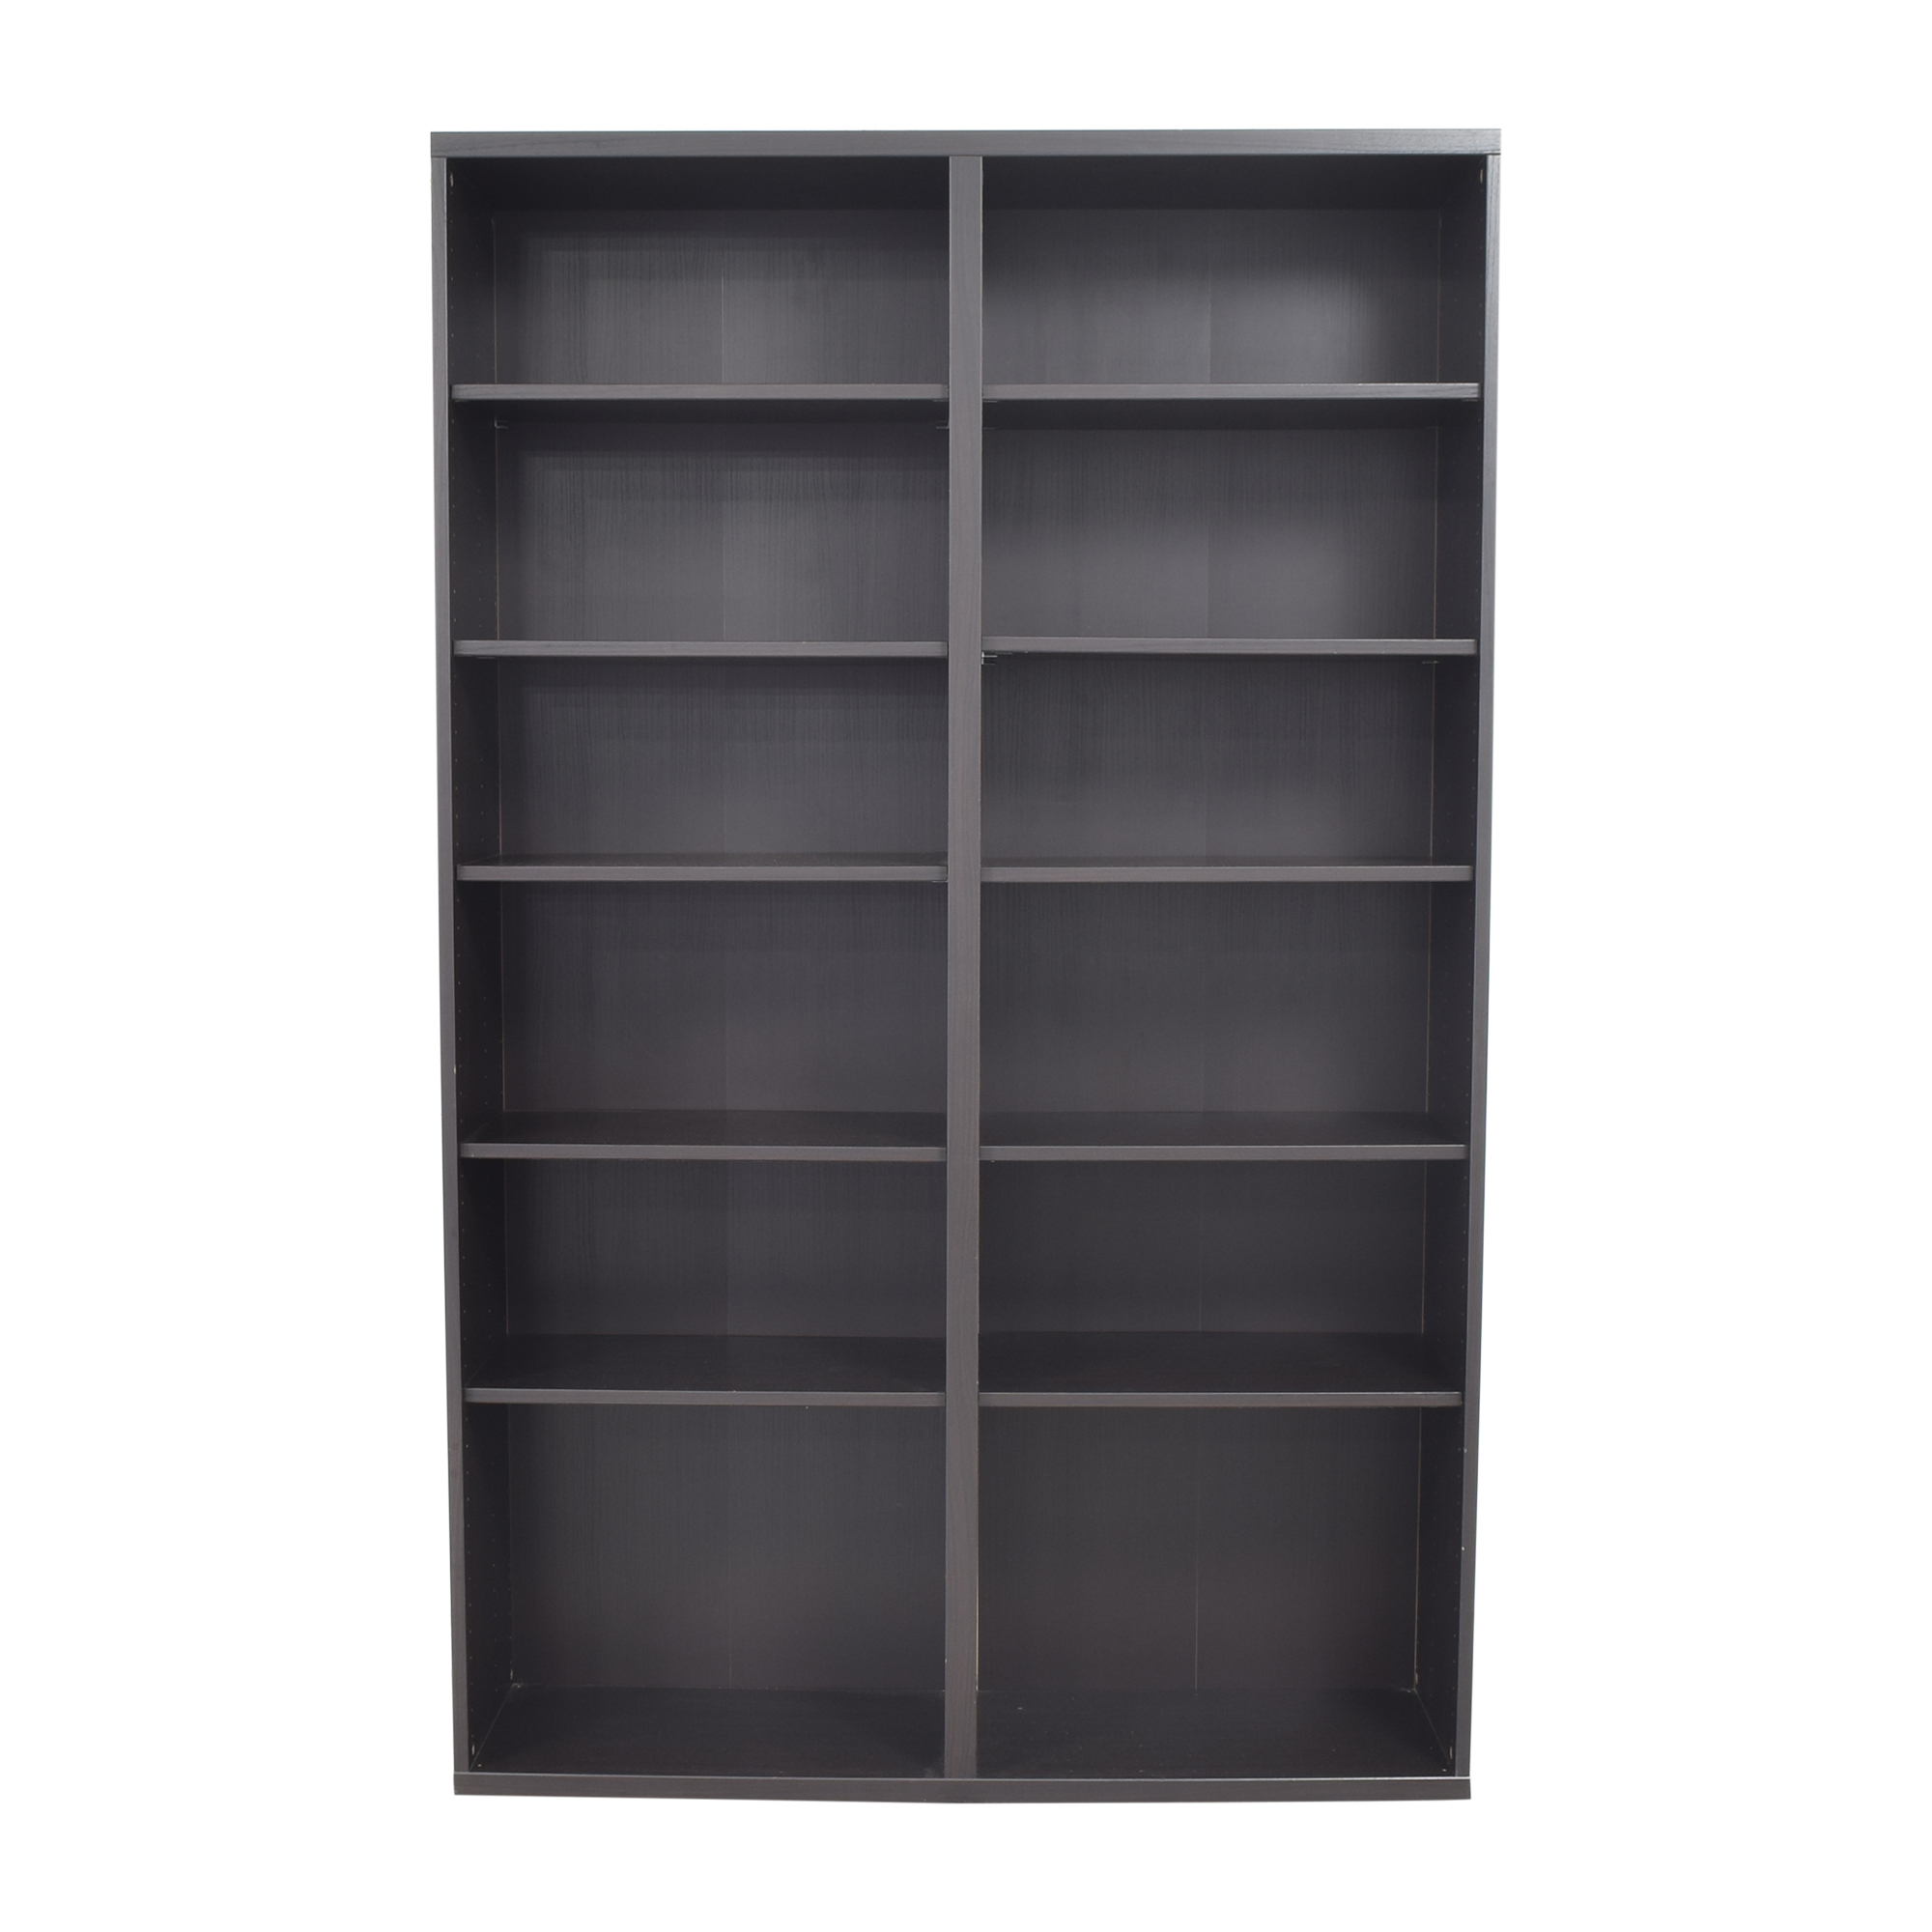 West Elm West Elm Double Bookshelf ct